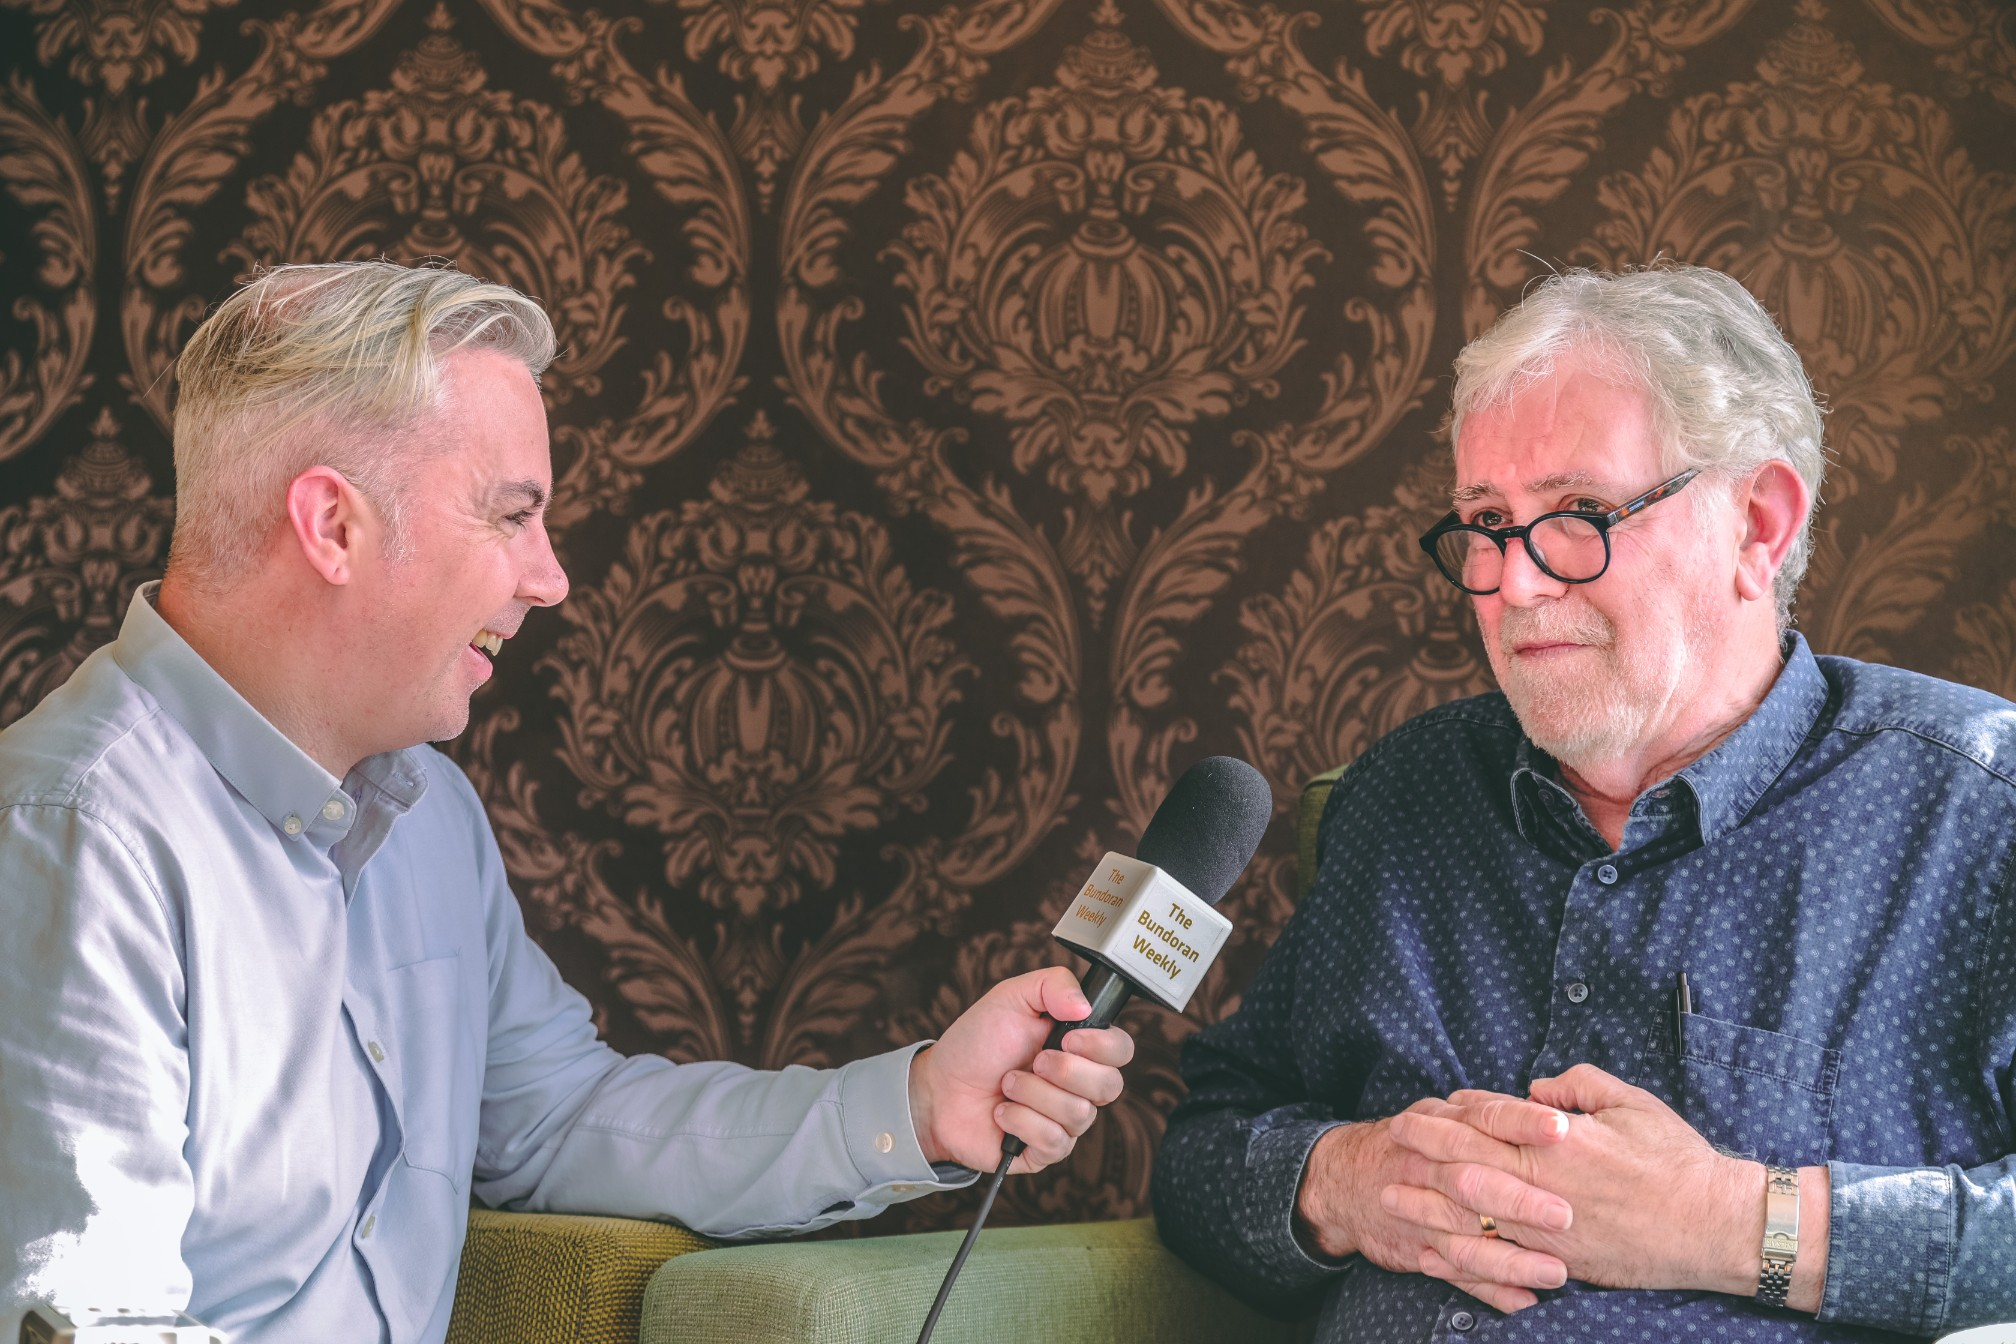 Picture shows Shane Smyth interviewing singer songwriter Charlie McGettigan for the Bundoran Weekly podcast in 2018 - six years in